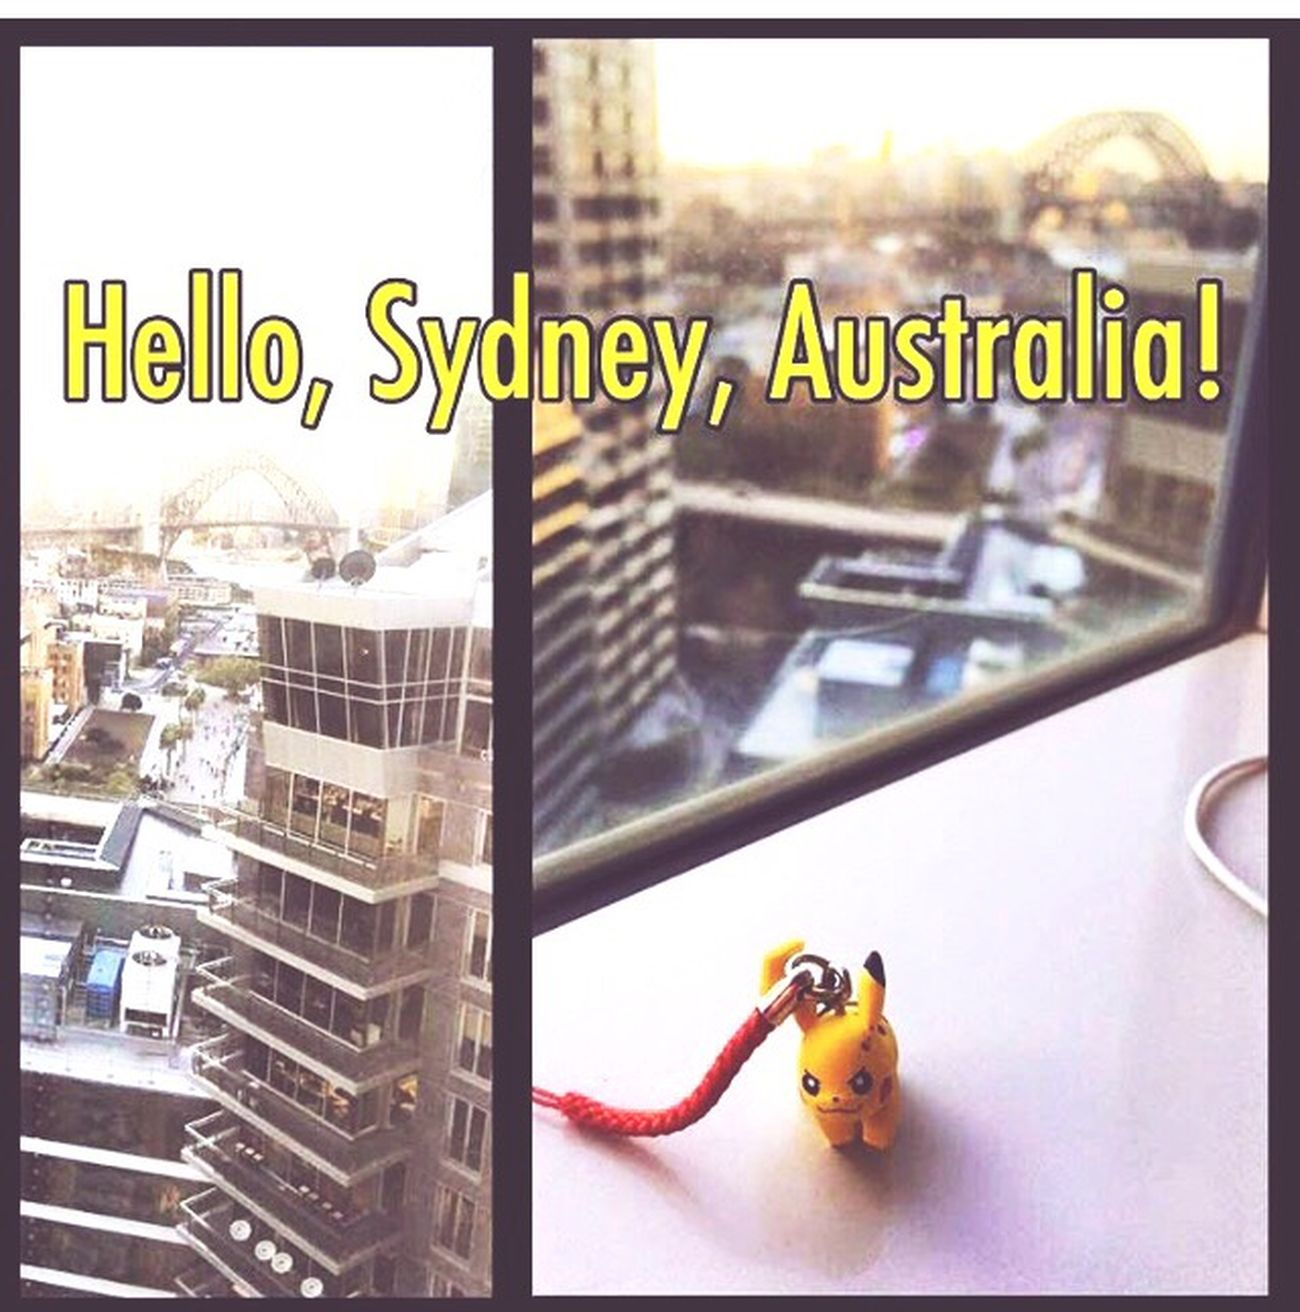 My Travel Companion I'm like a Kid Heart 😊 Pikachu Pokémon Window Toy Building Exterior No People Day Indoors  City Architecture Close-up this was in 2015  Trip Overlooking the Sydney Harbor Harbour Australia 🇦🇺 Streamzoofamily Mobilephotography